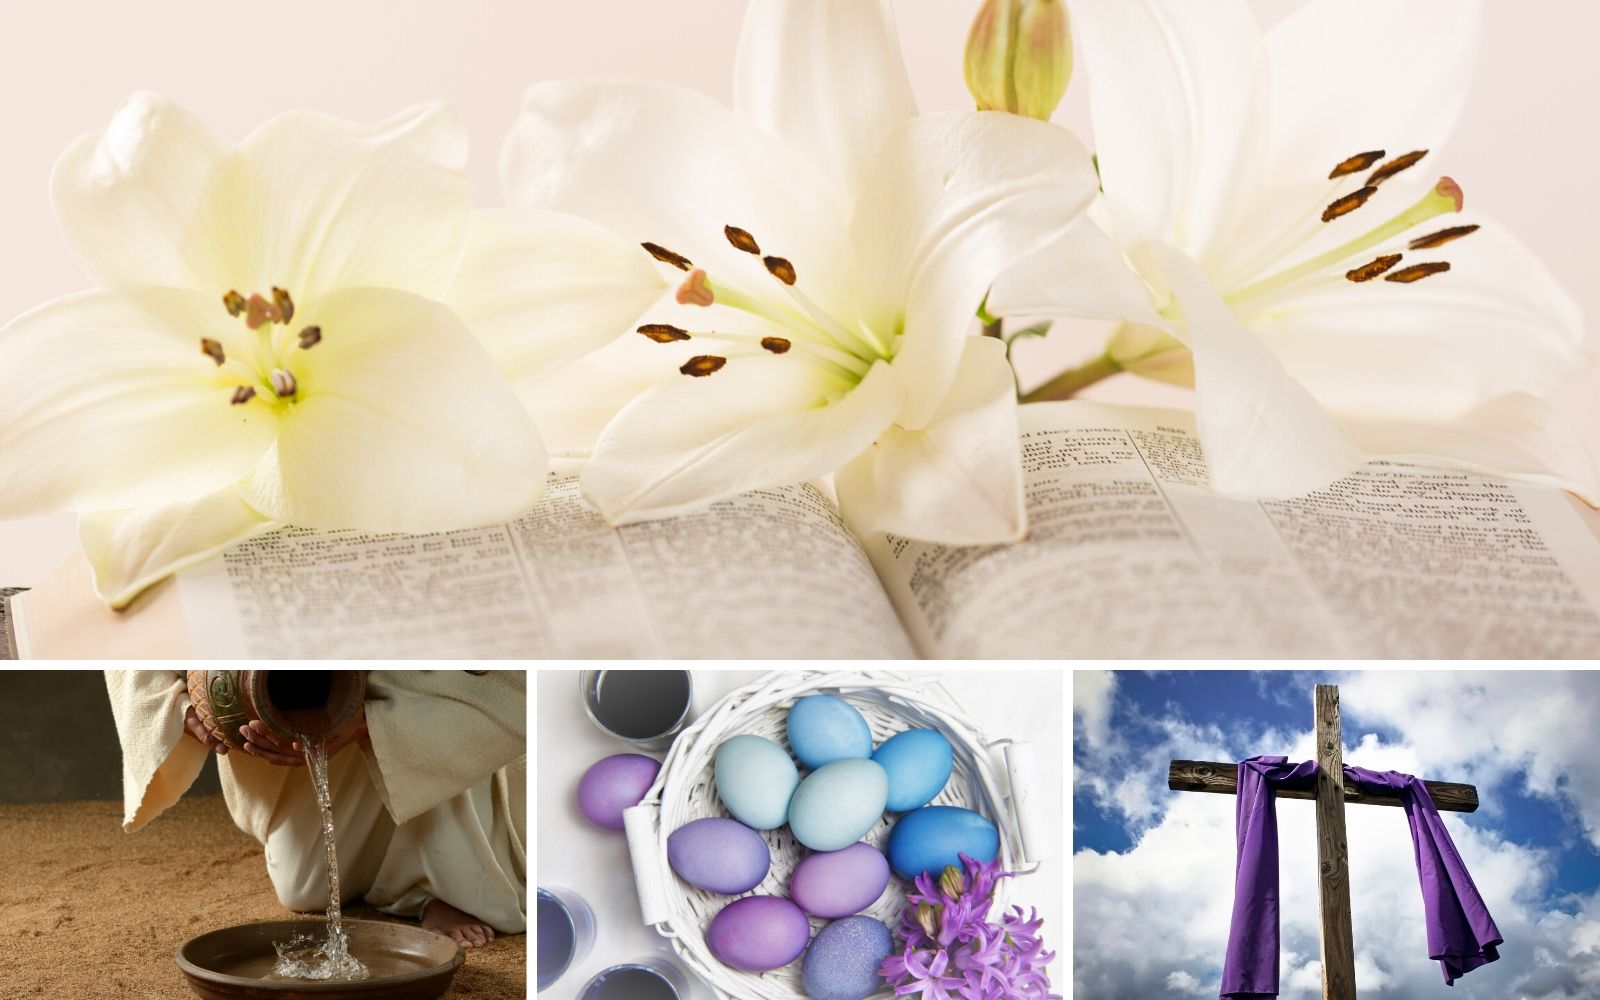 Easter Lily, Water, Eggs, Cloak